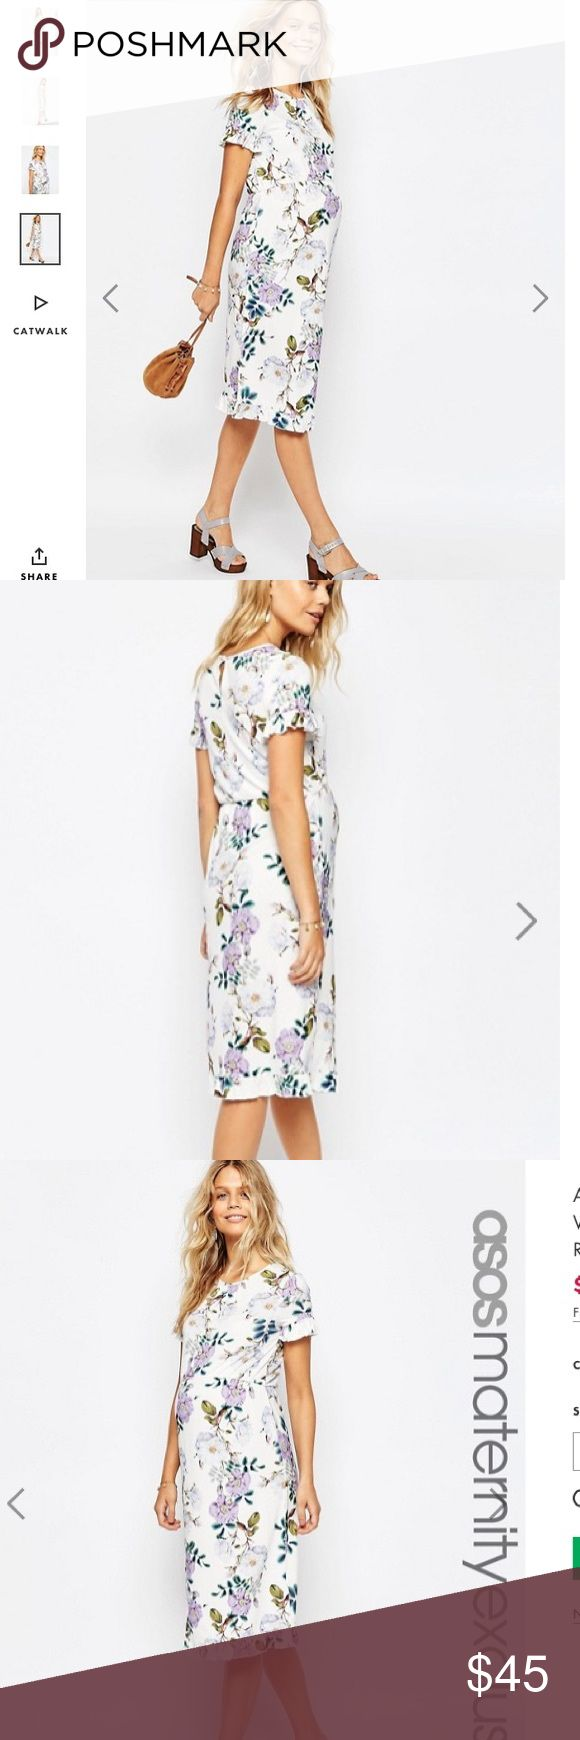 Top 25 best asos maternity sale ideas on pinterest pregnancy nwt asos maternity flower dress 8 boutique ombrellifo Choice Image